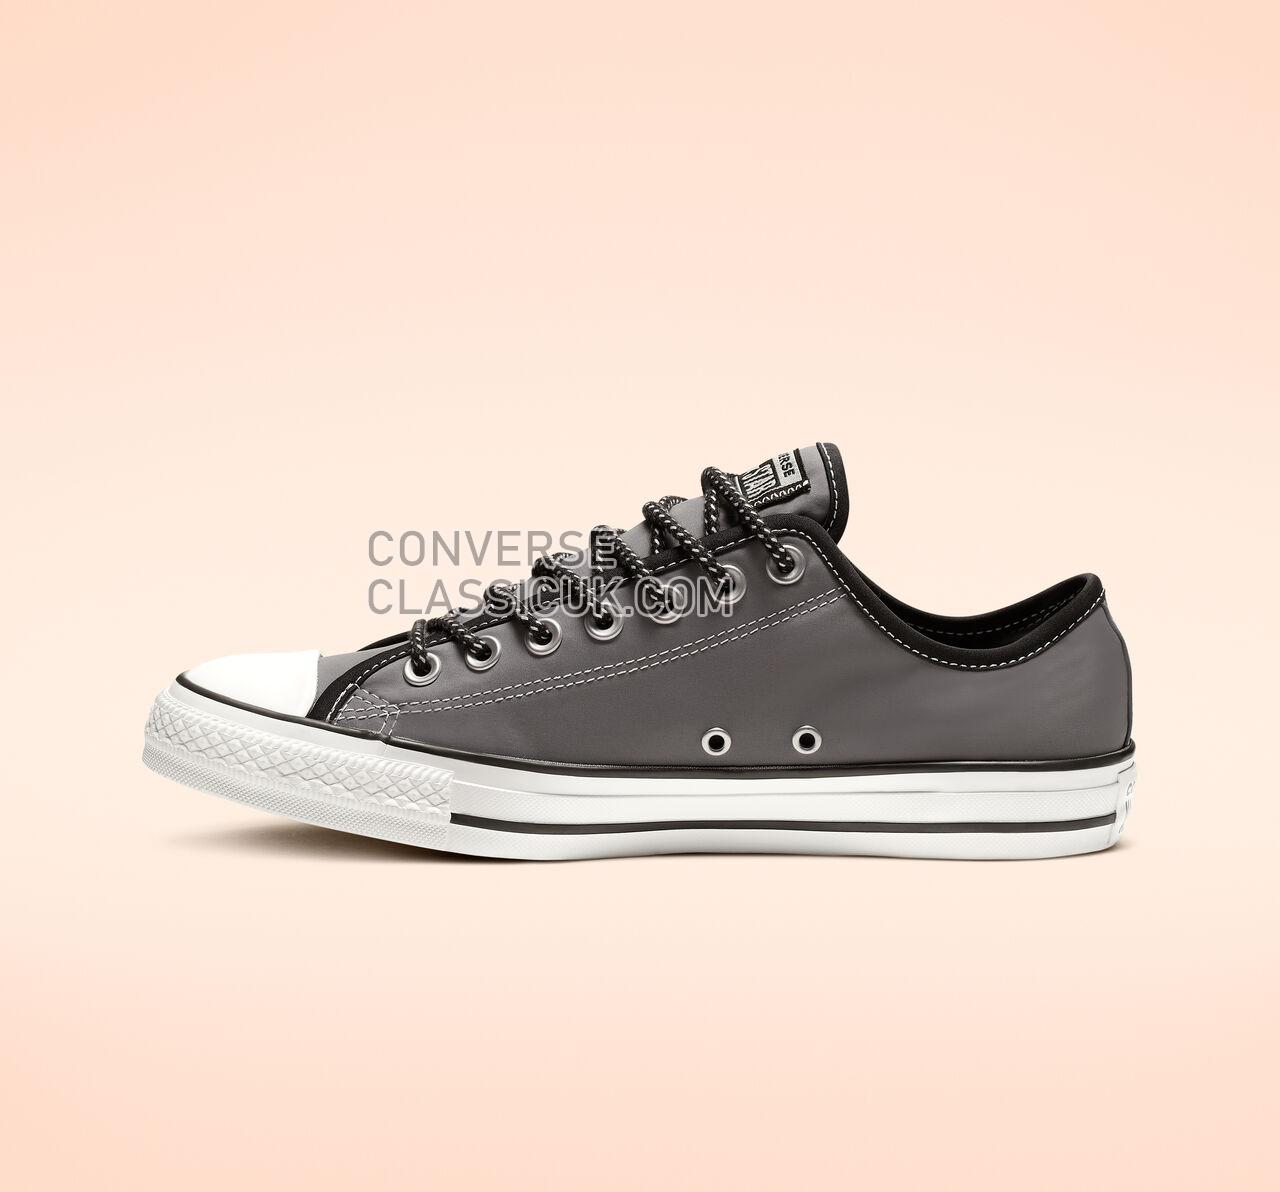 Converse Chuck Taylor All Star Get Tubed Low Top Mens Womens Unisex 164095F Cool Grey/Black/White Shoes